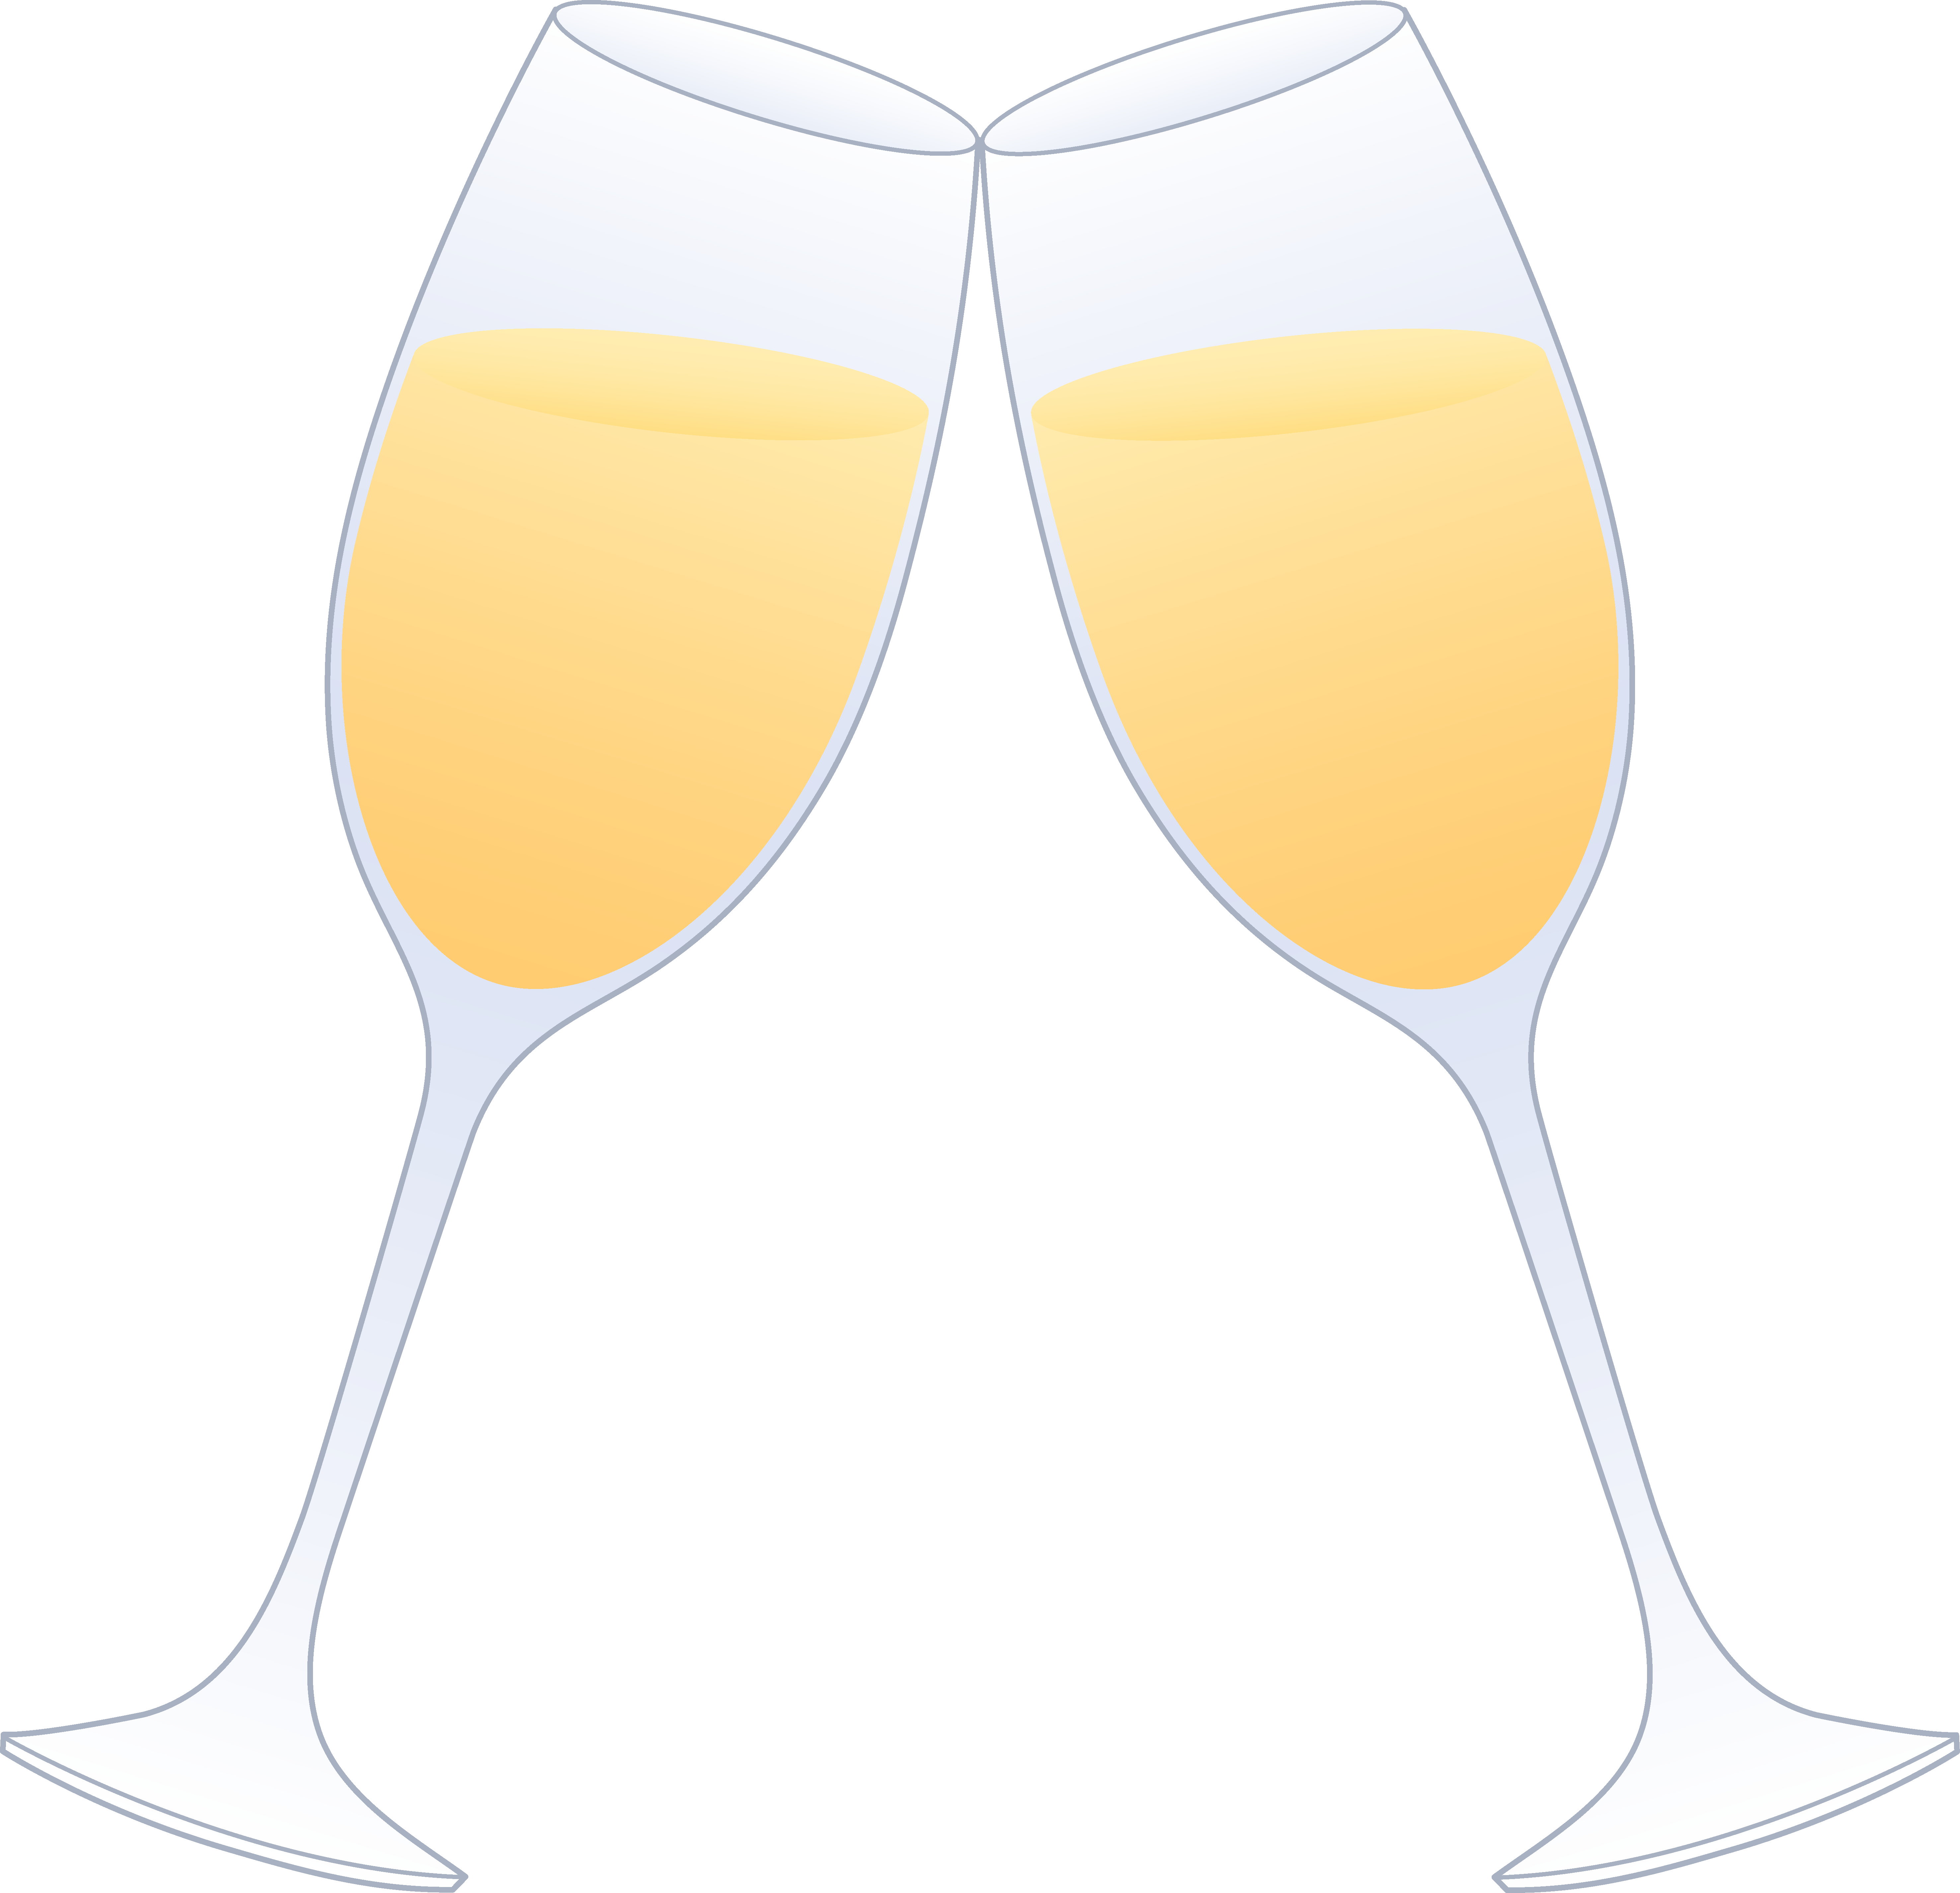 Anniversary clipart champagne glass. Glasses of clinking free